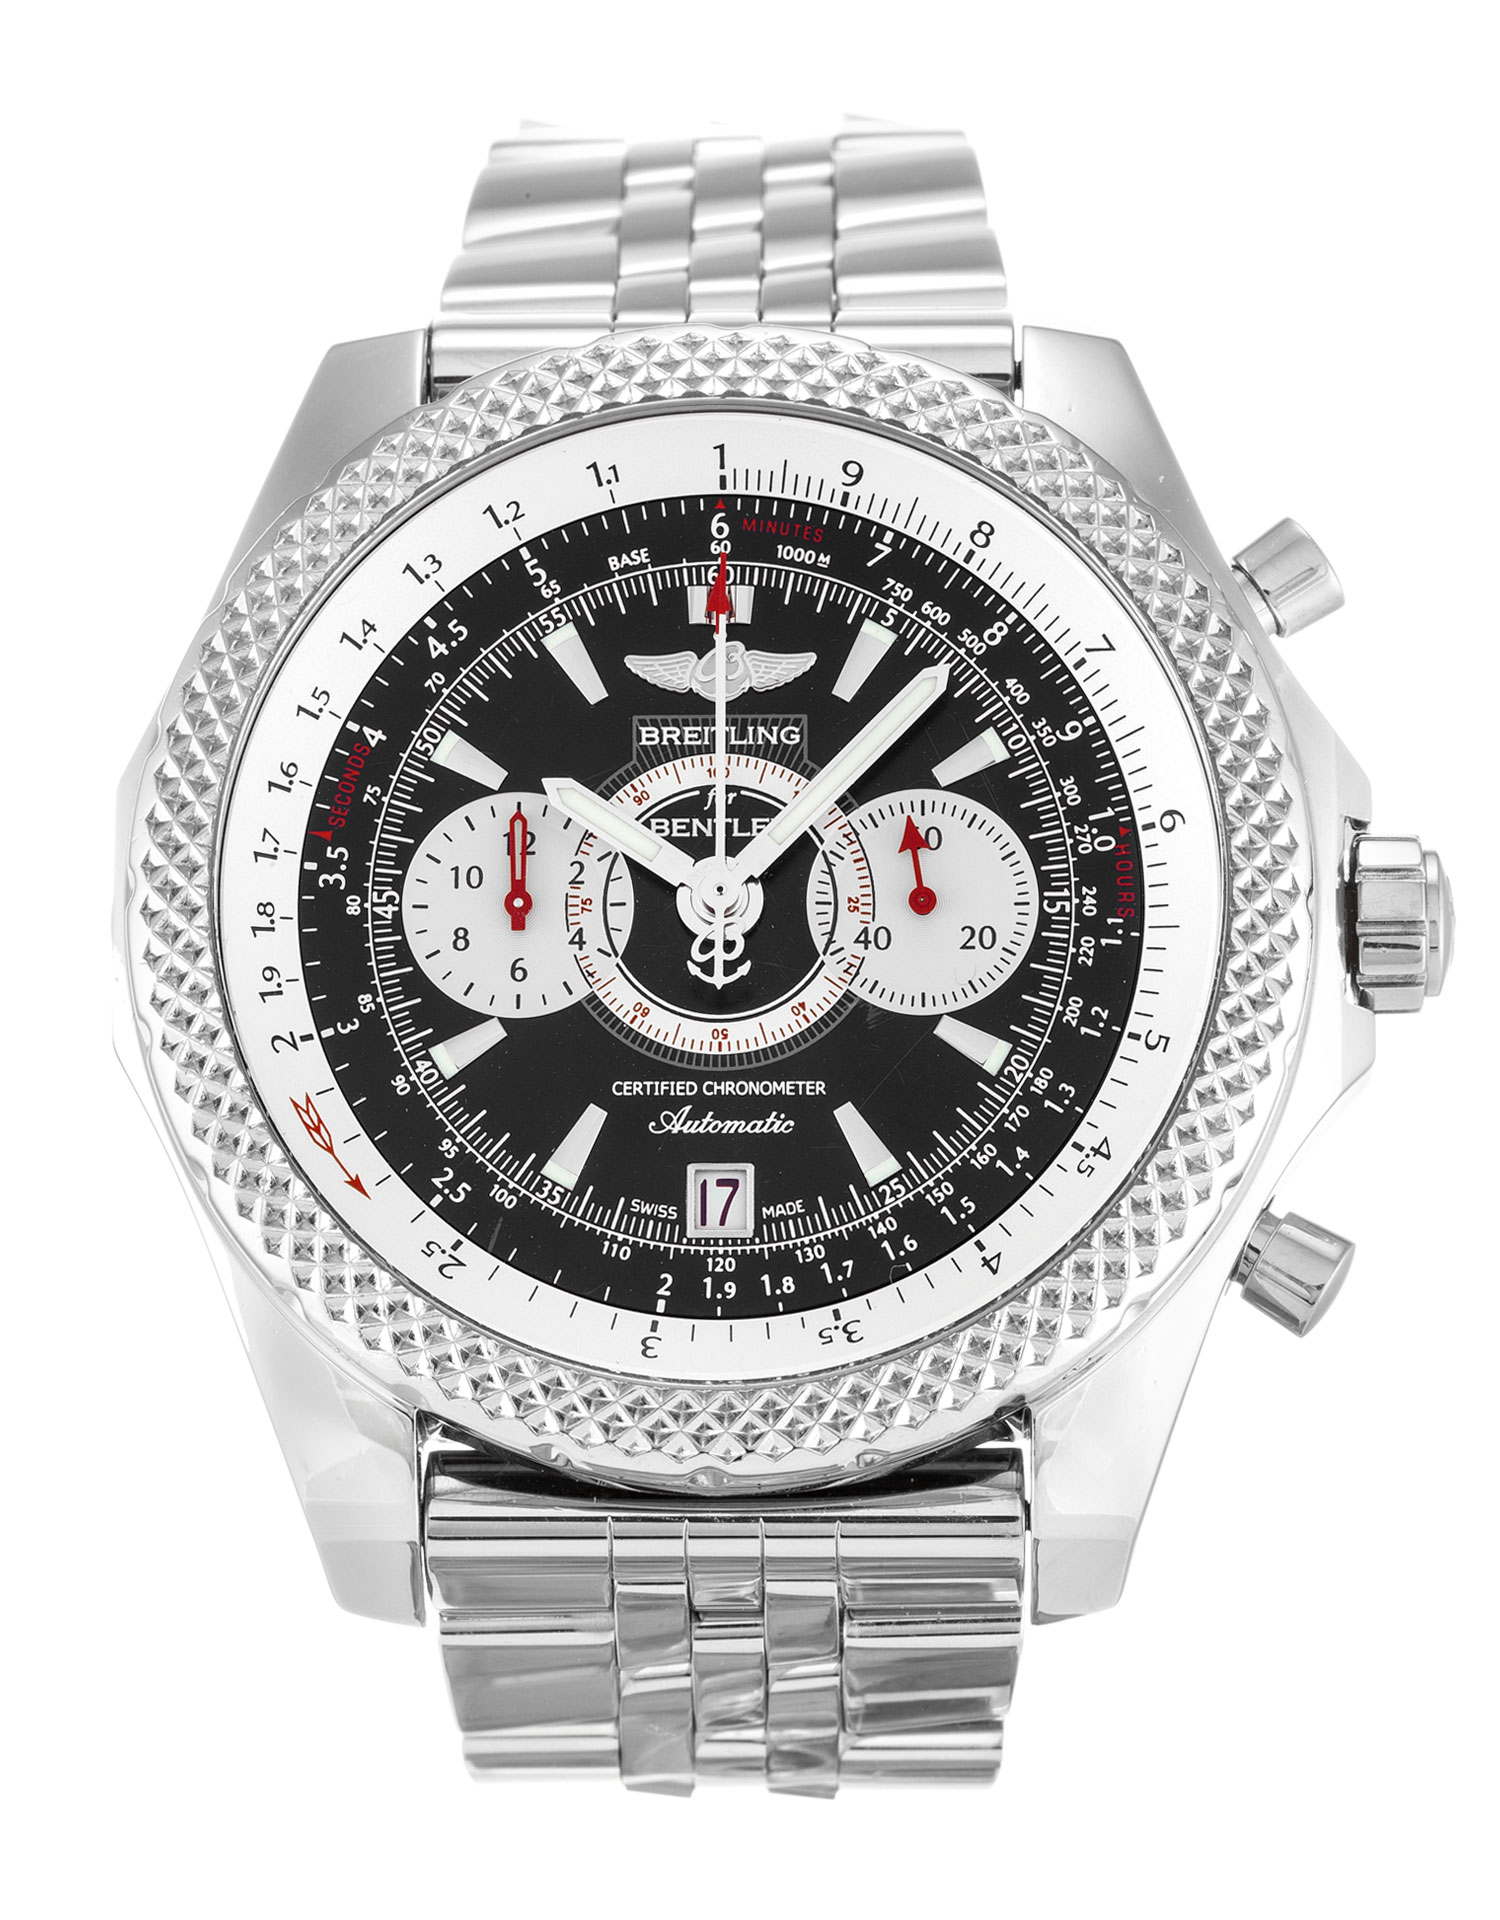 breitling i bentley chronometer watch speed silver chronograph dial